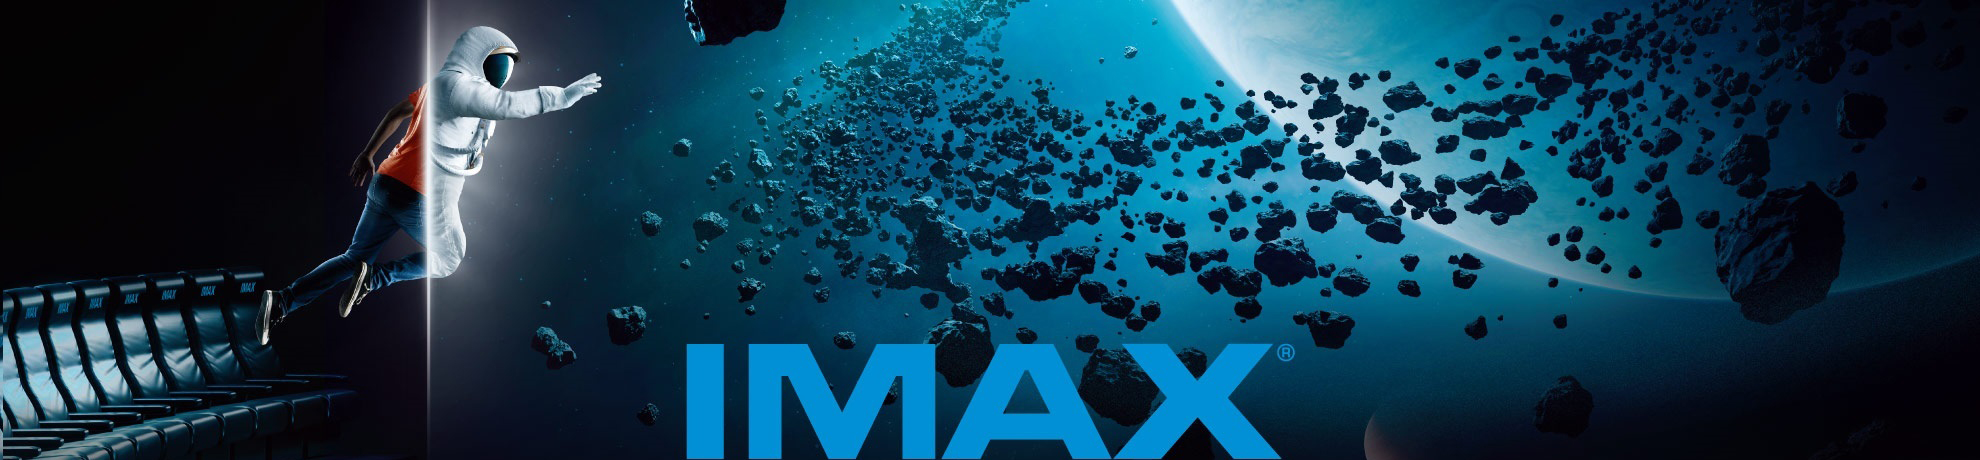 Hero Image for IMAX